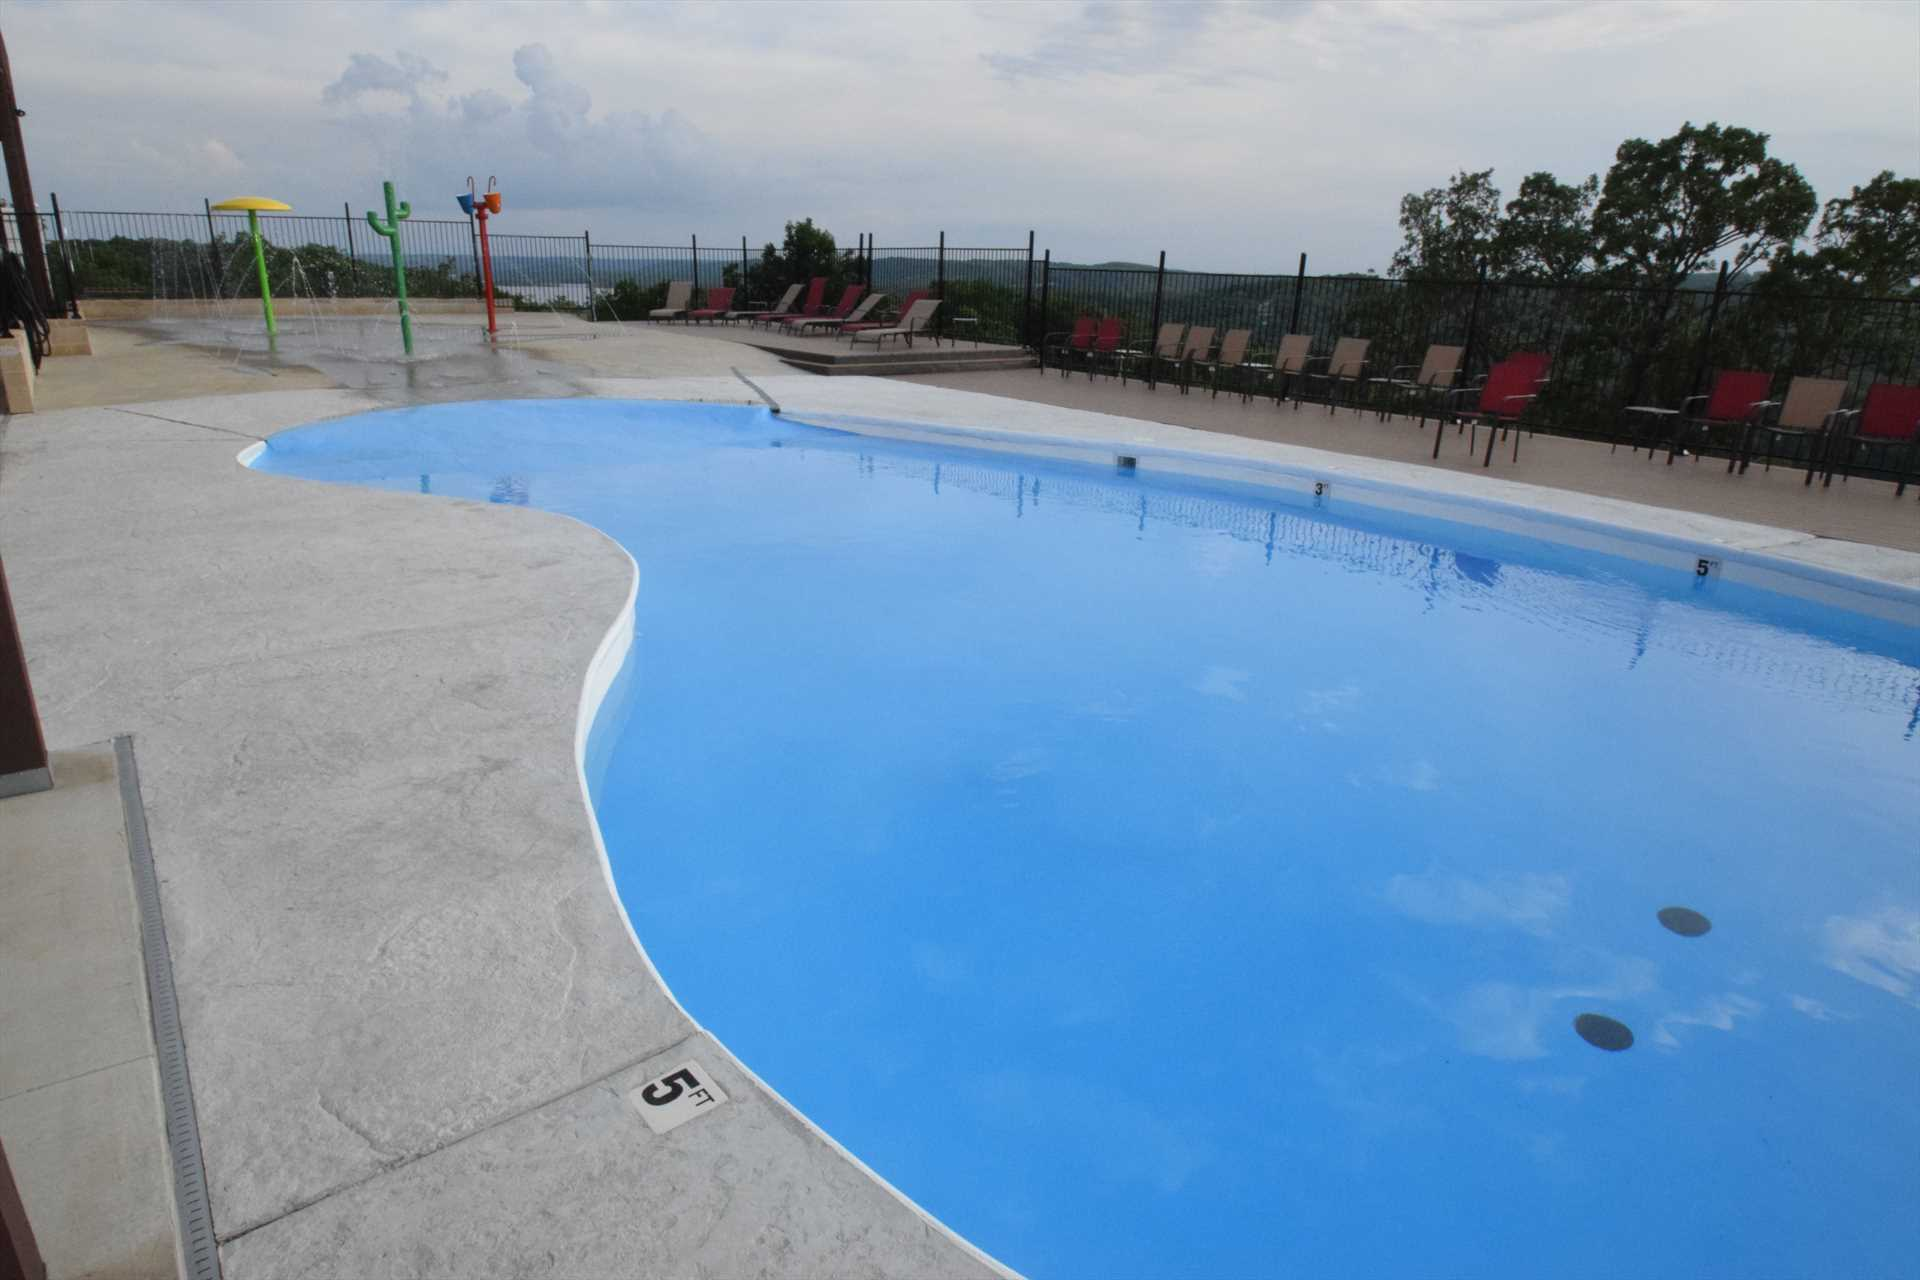 The outdoor pool has beautiful views of the lake.